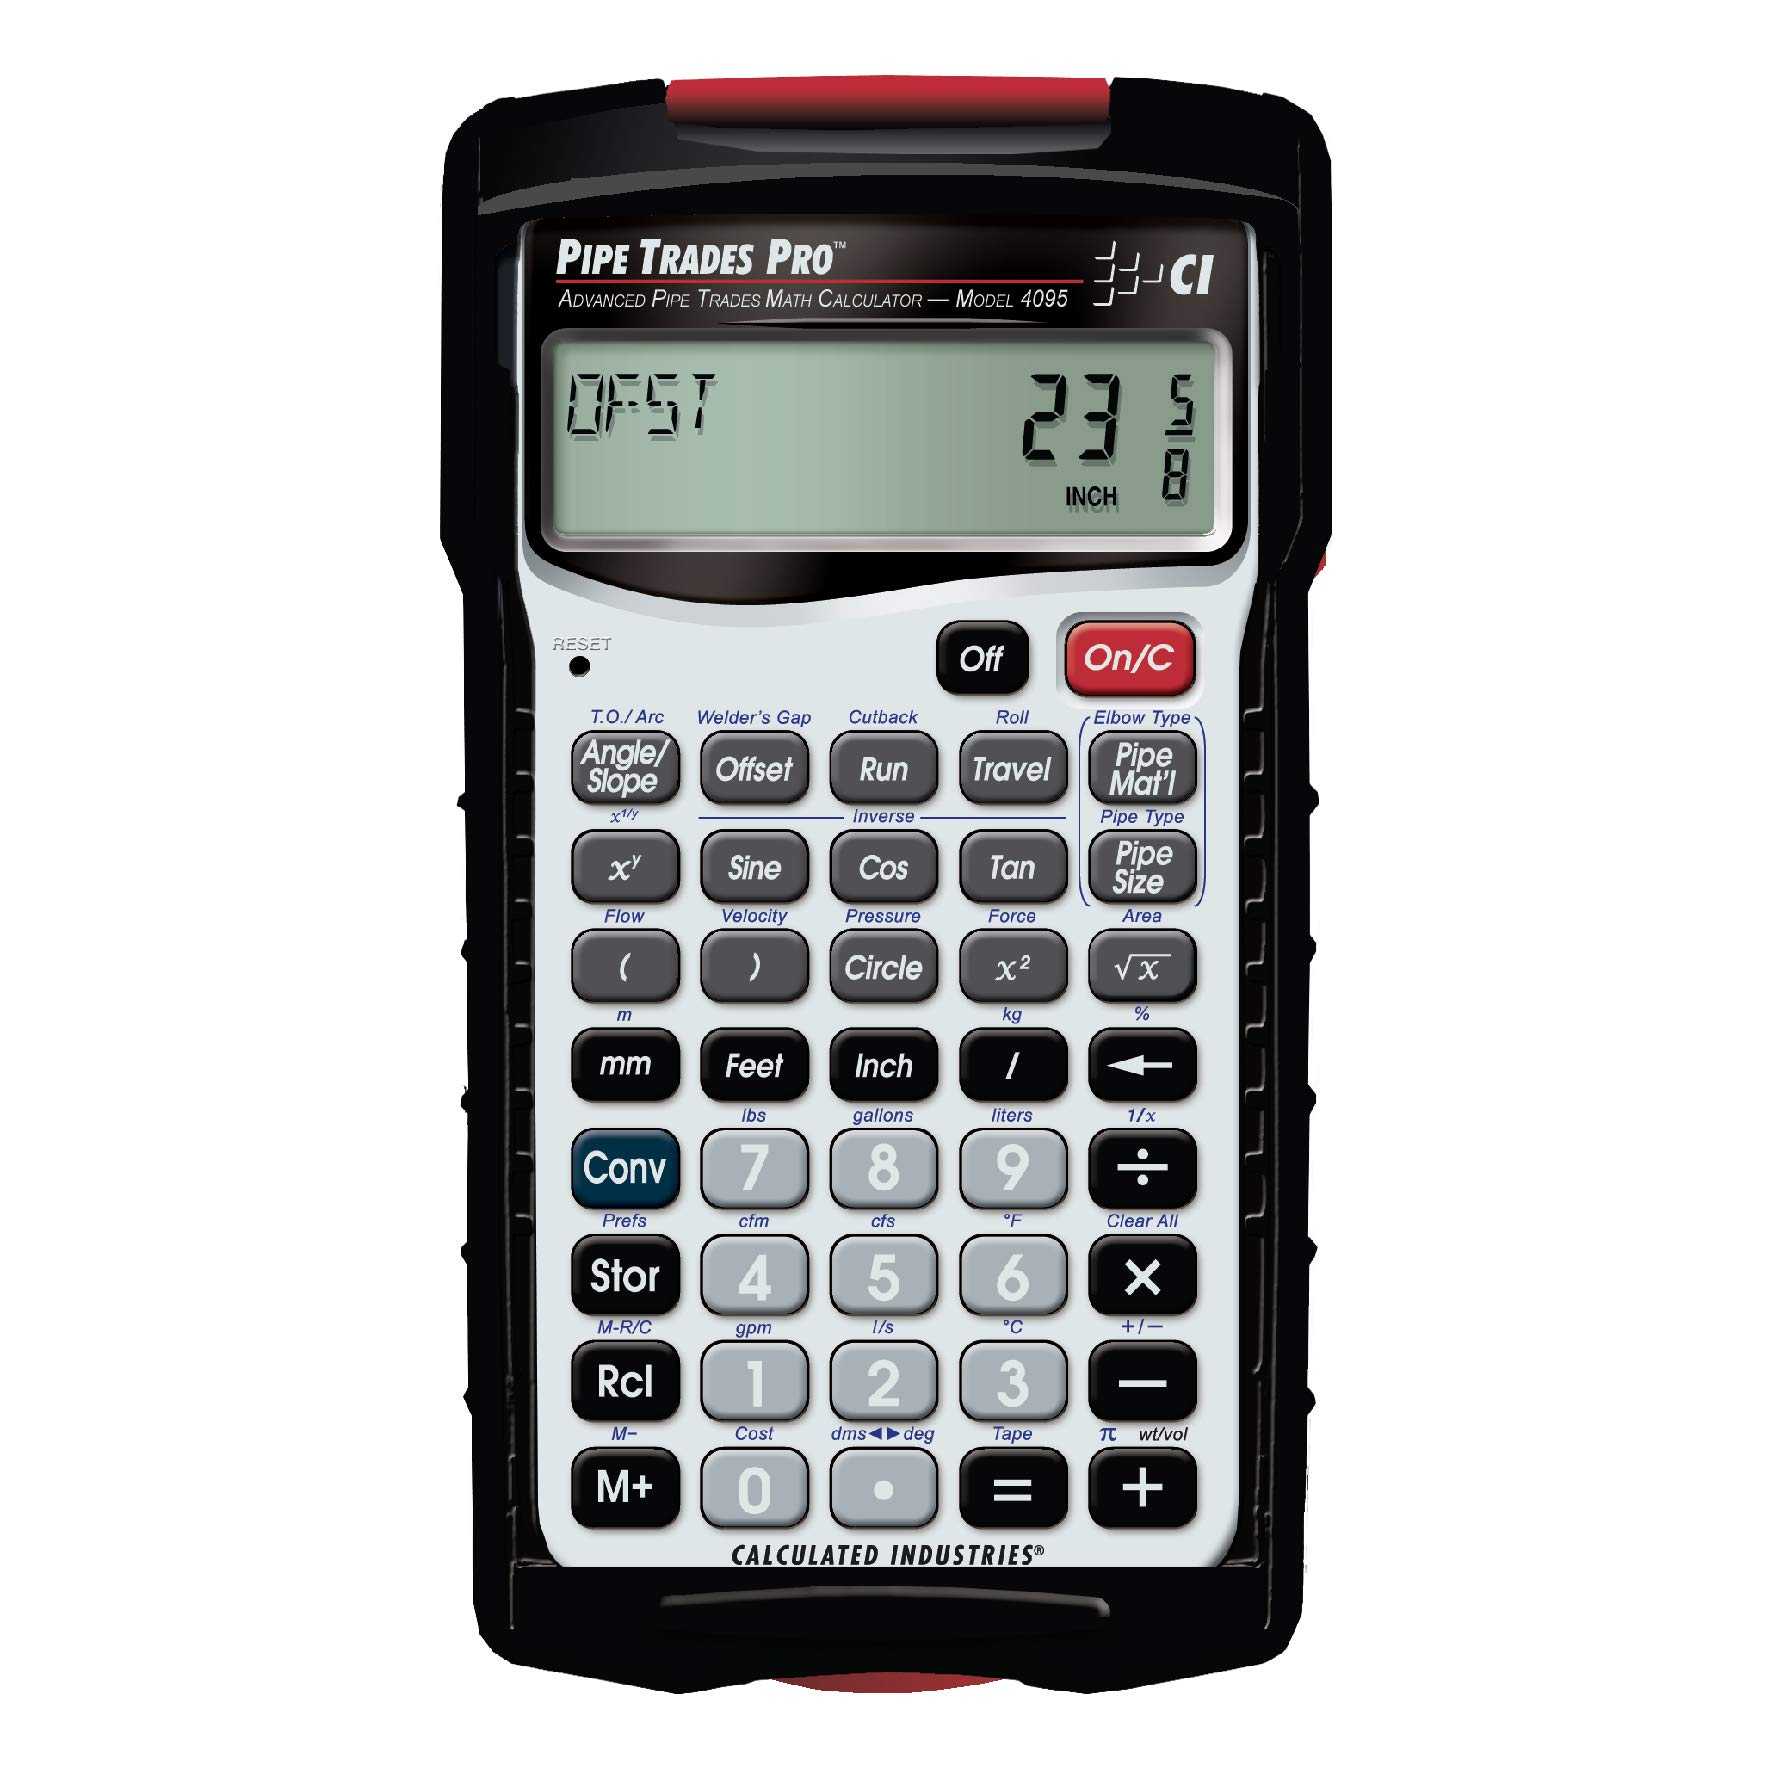 Calculated Industries 4095 Pipe Trades Pro Advanced Pipe Layout and Design Math Calculator Tool for Pipefitters, Steamfitters, Sprinklerfitters and Welders | Built-in Pipe Data for 7 Materials